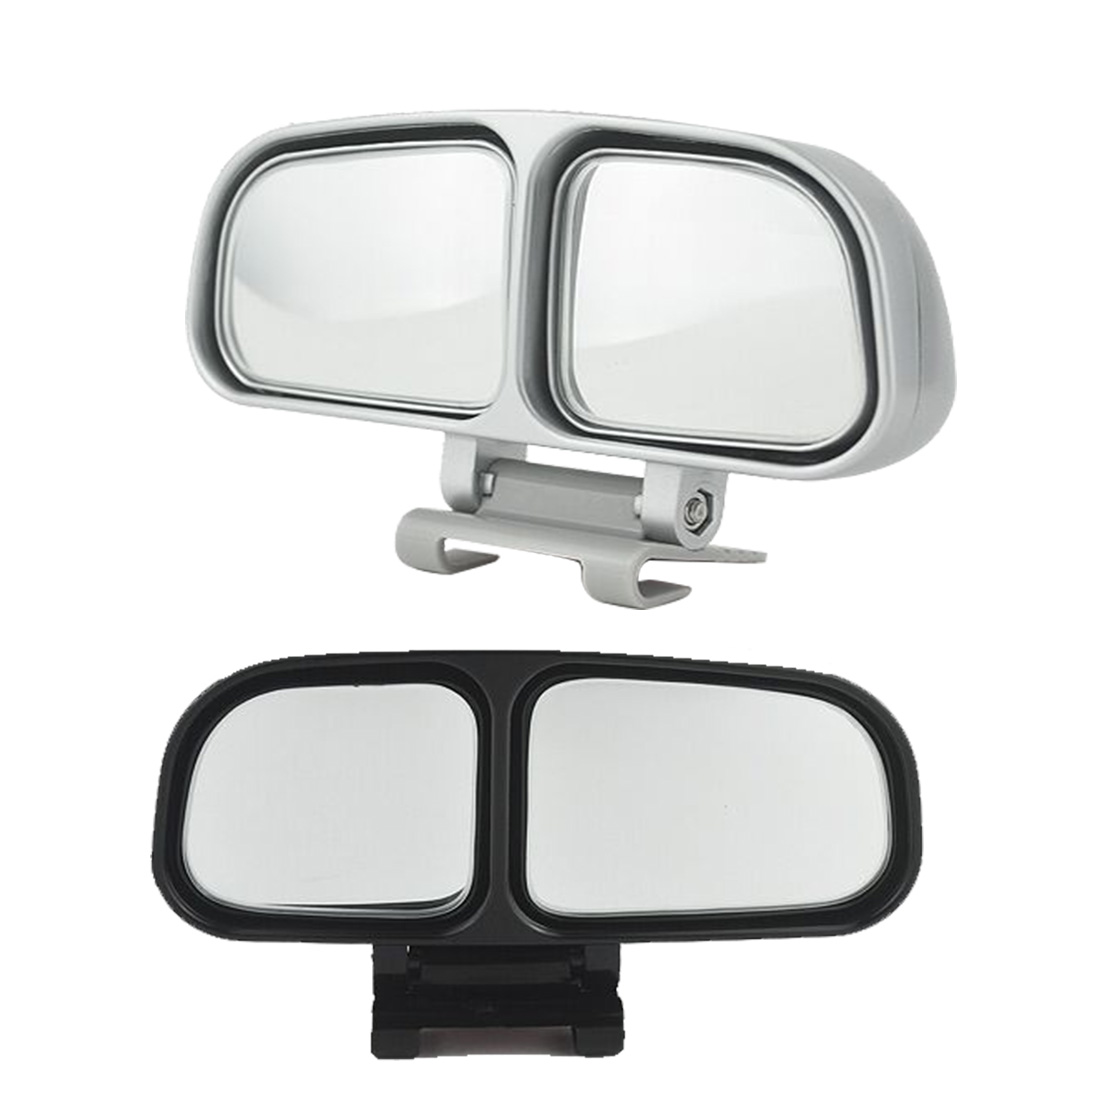 Dewtreetali auto wide angle rear mirrors side rearview car universal blind spot square mirror of 2